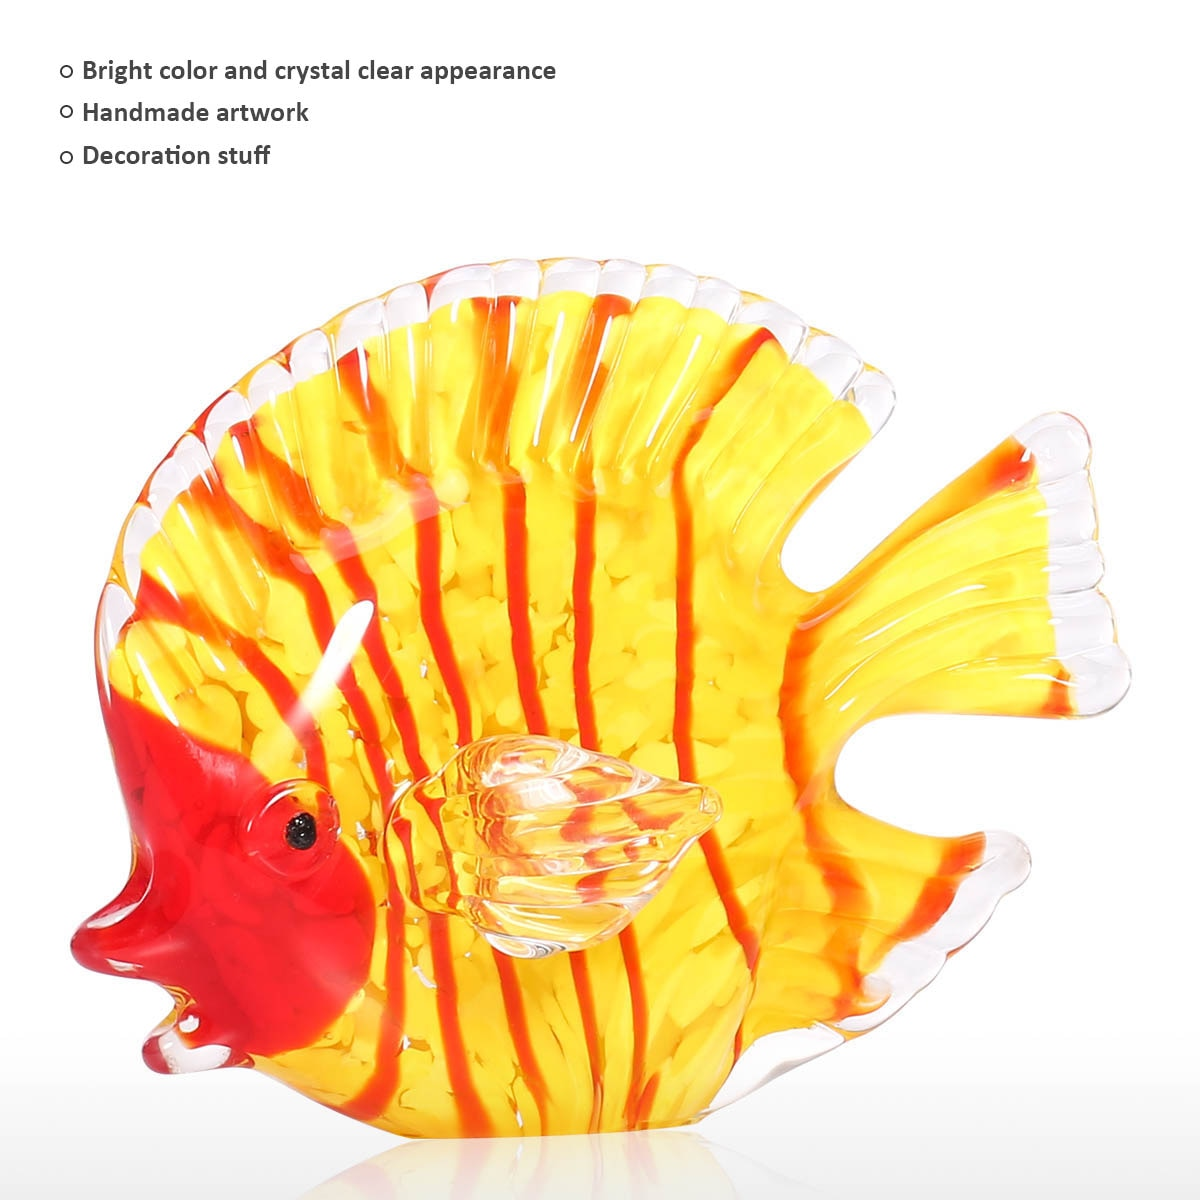 Yellow Fish Hand Blown Glass Sculpture Morden Art Glass Sculpture Figurine Home Decoration Accessories for Living Room